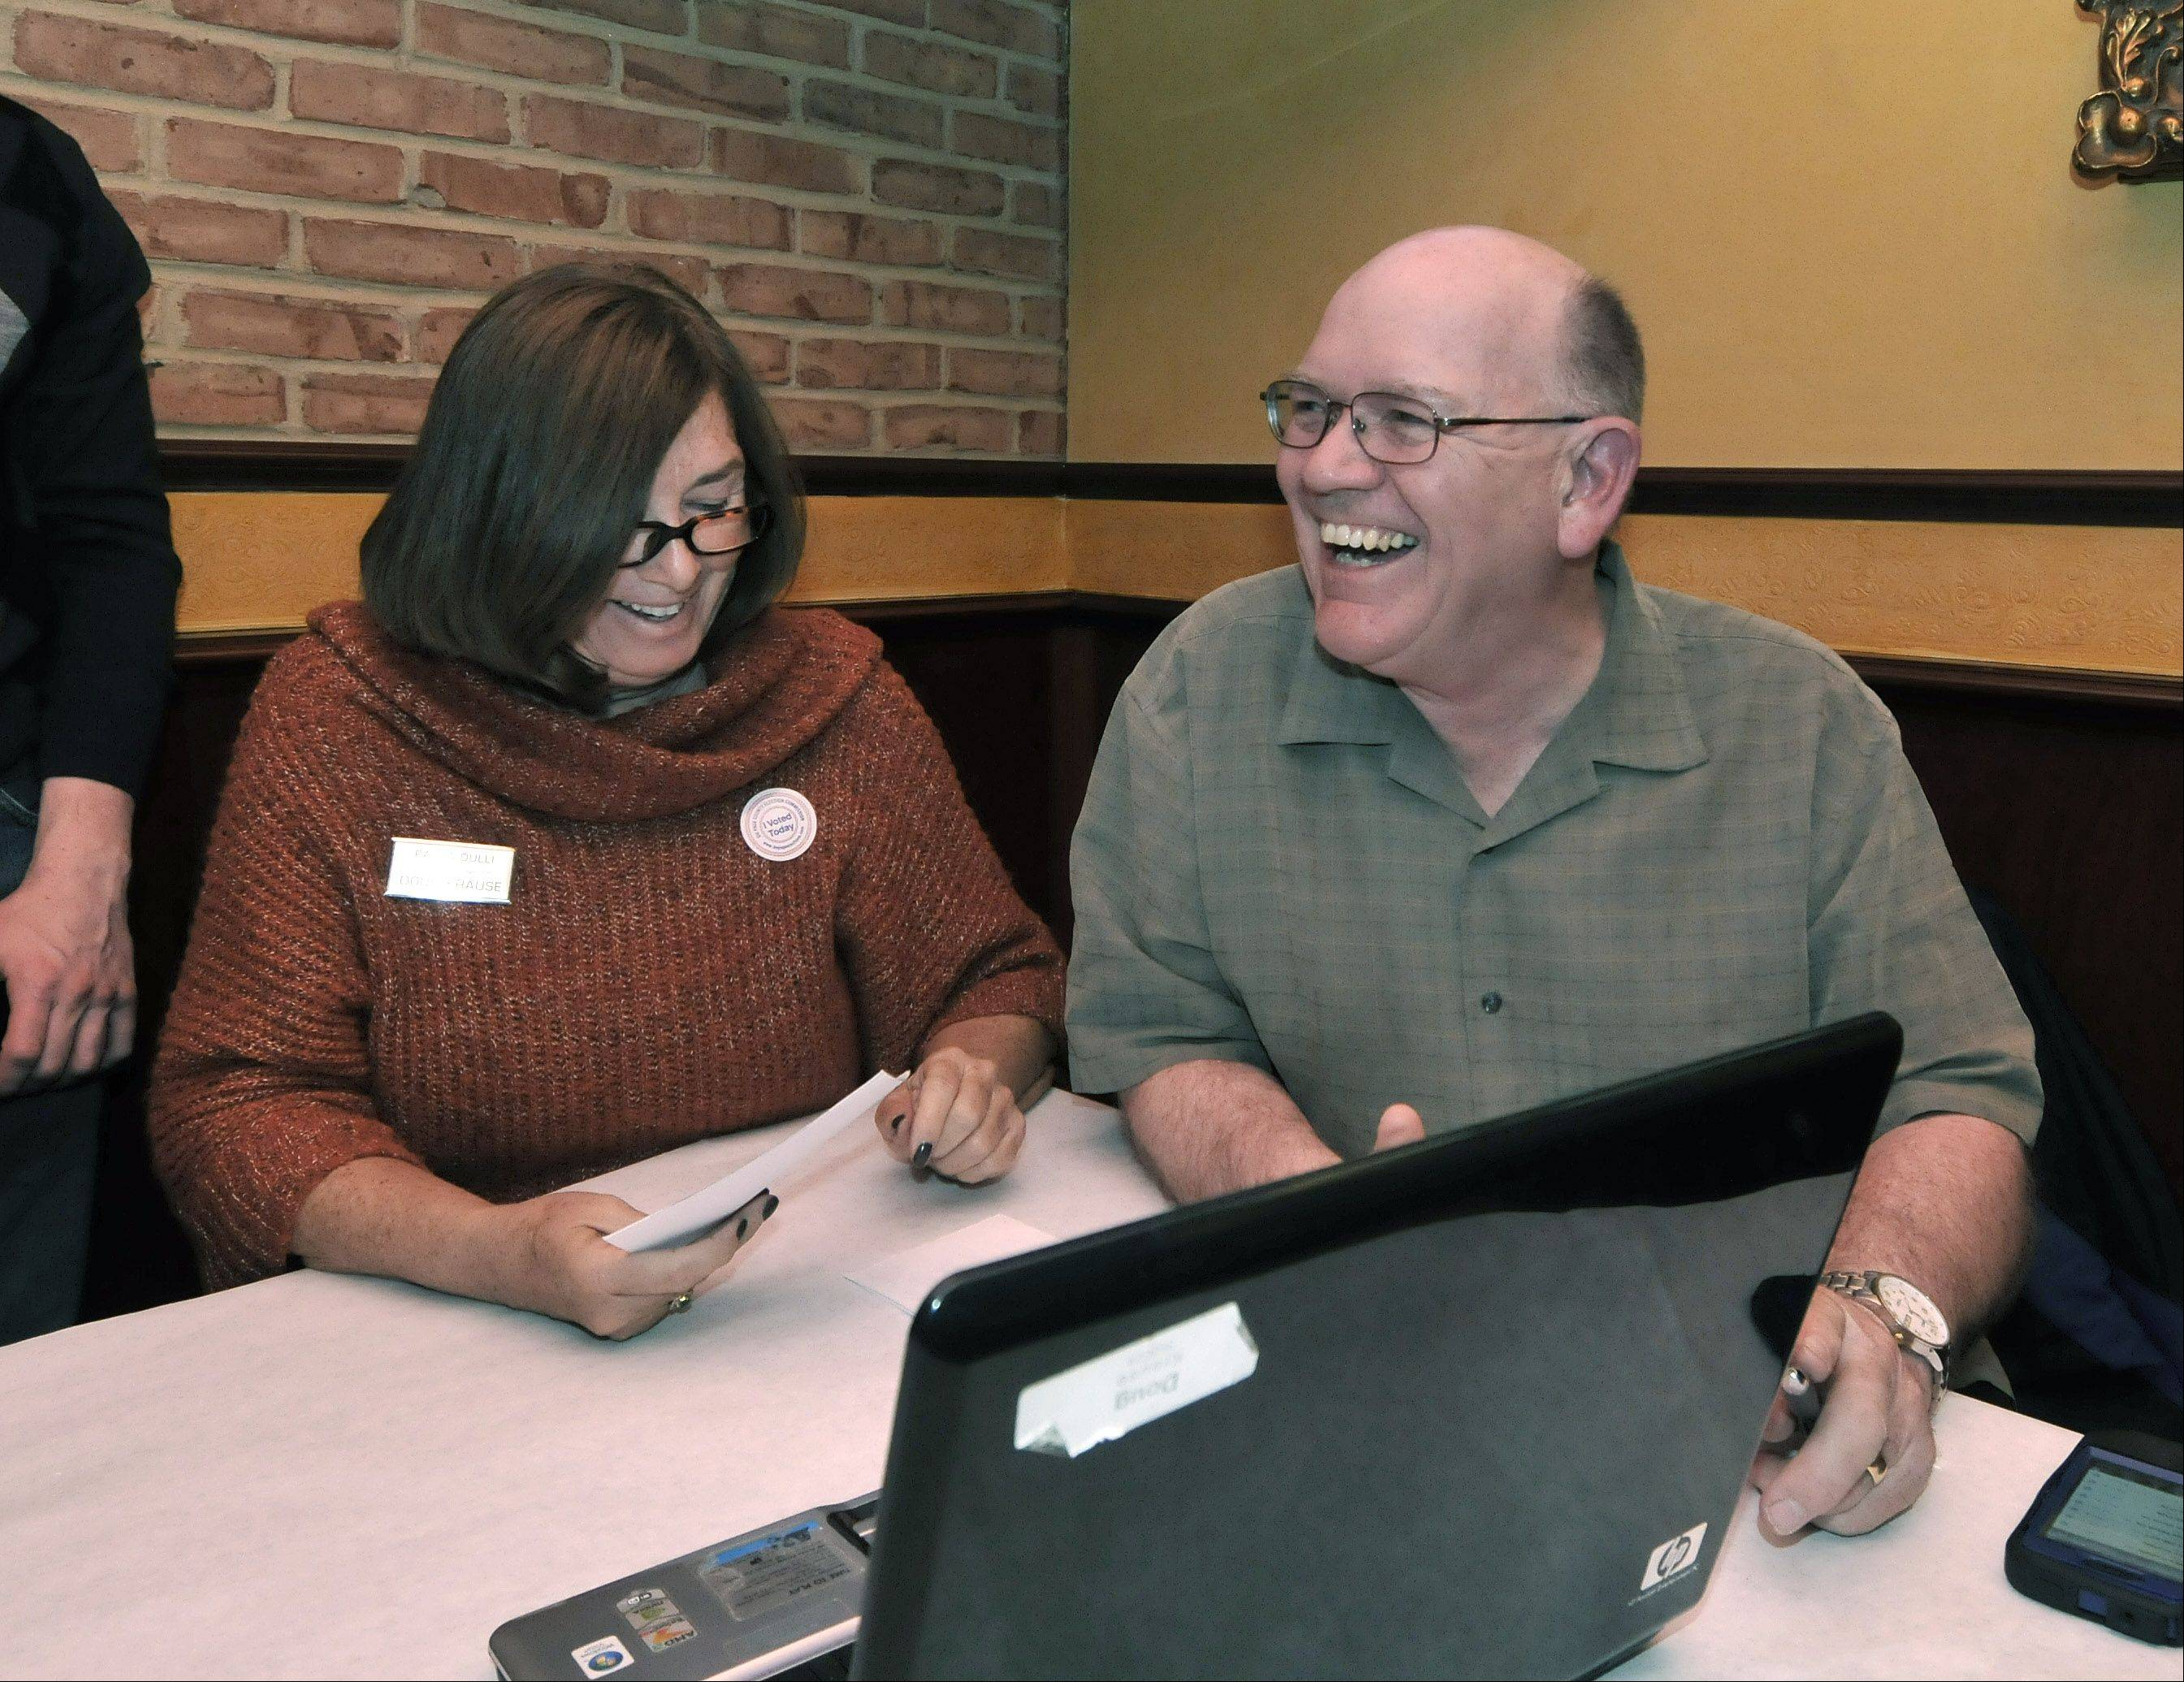 Doug Krause was all smiles Tuesday night as the early vote totals come in. He was monitoring the vote totals for the Naperville City Council Tuesday night with family and friends, and supporters including his campaign manager Paula Dulli, left, at Traversos restaurant in Naperville. He's the longest serving Naperville City Council member and is running for re-election.